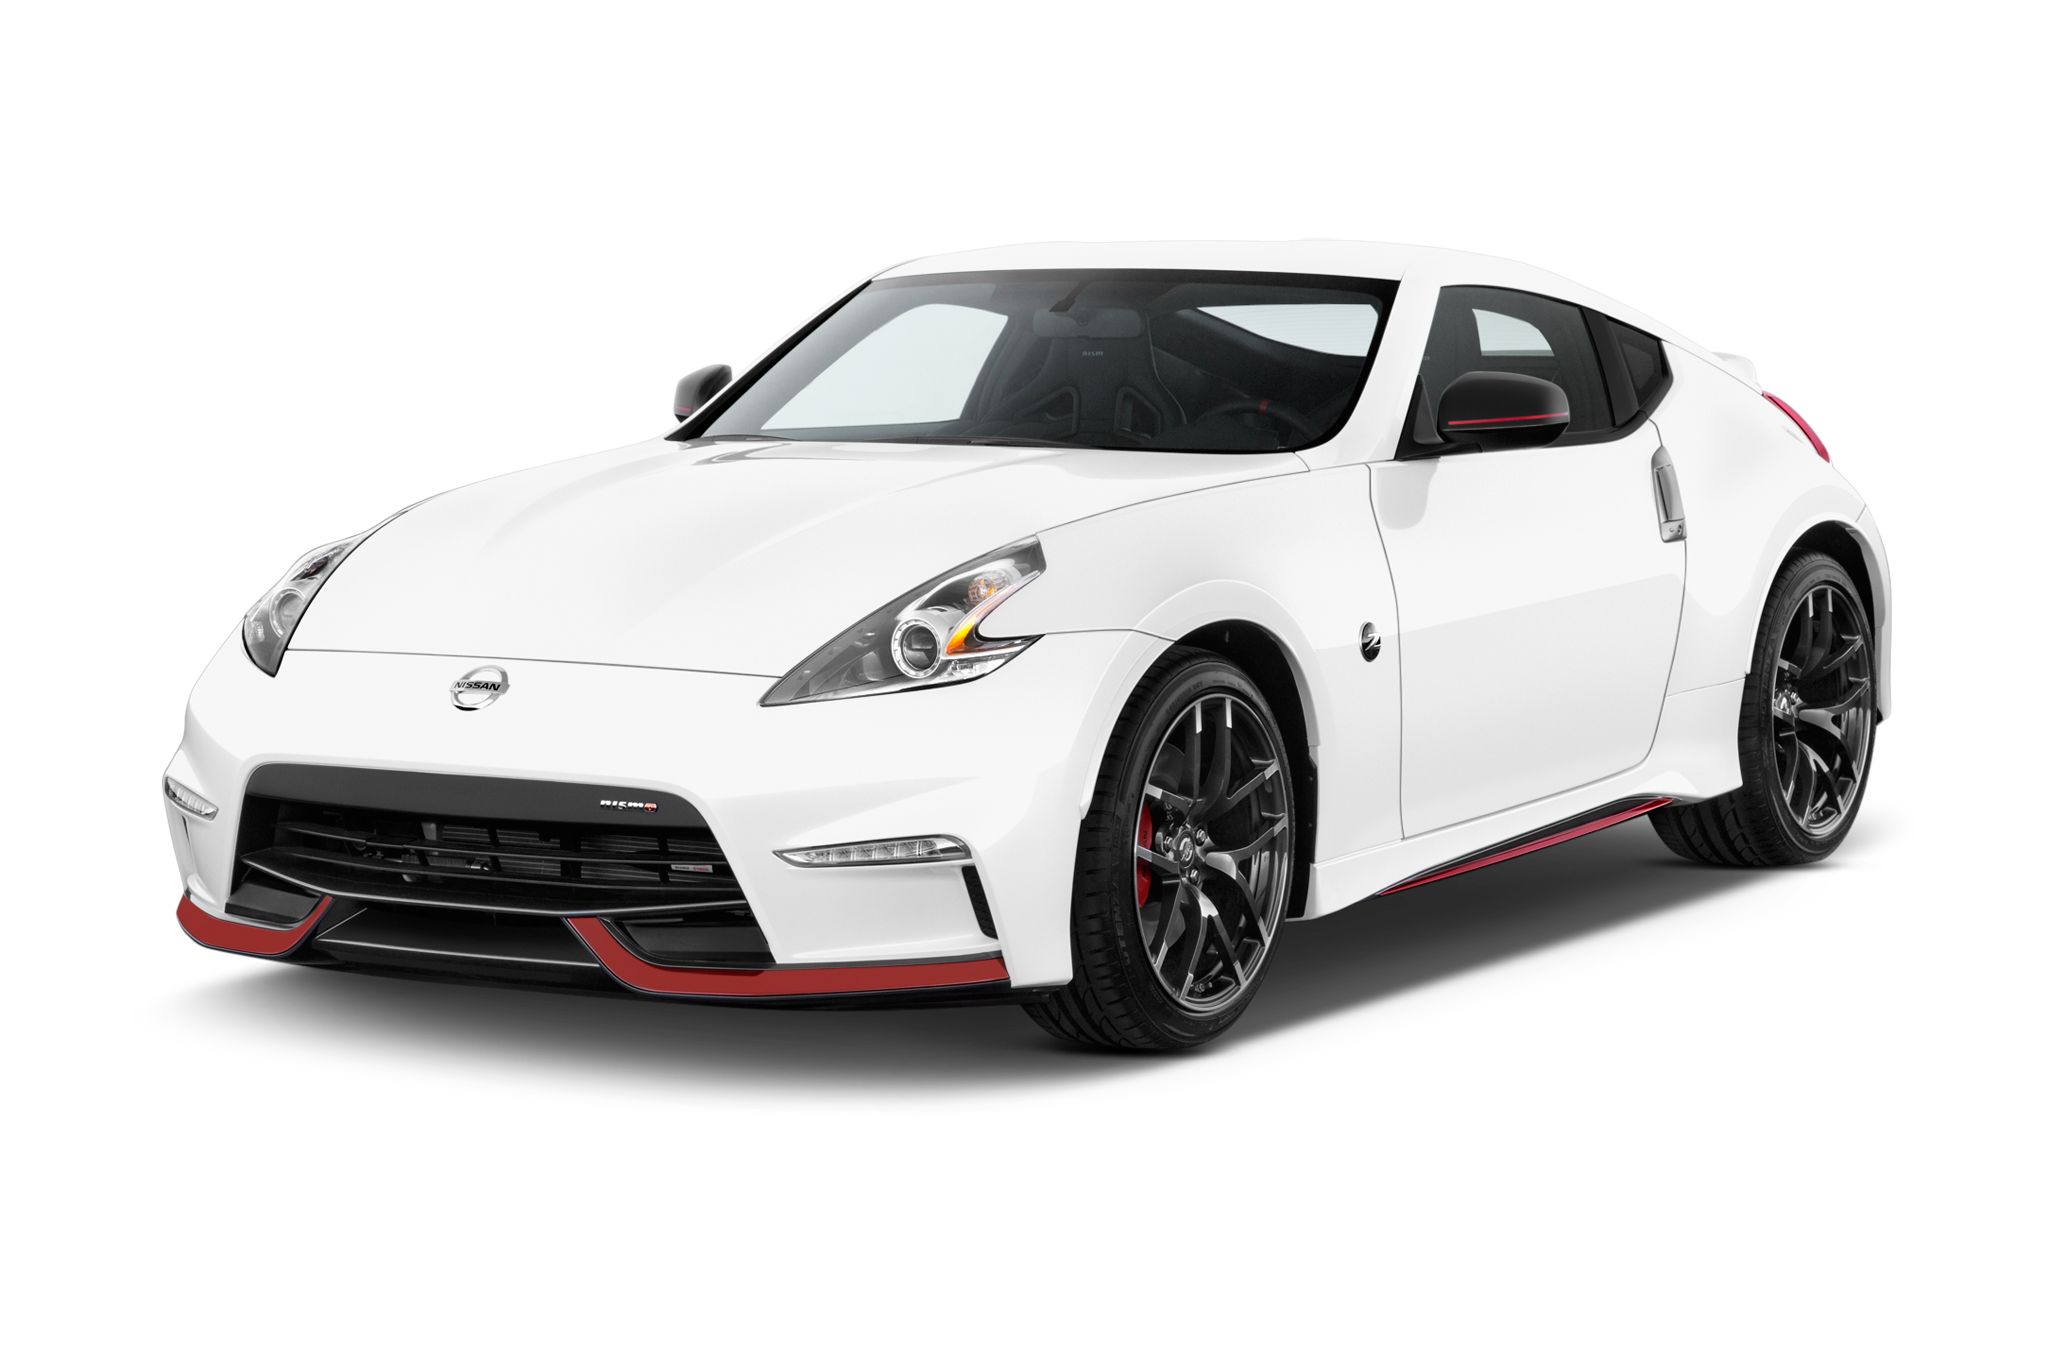 Z Nismo Png - 2017 Nissan 370Z Reviews - Research 370Z Prices & Specs - Motor ...